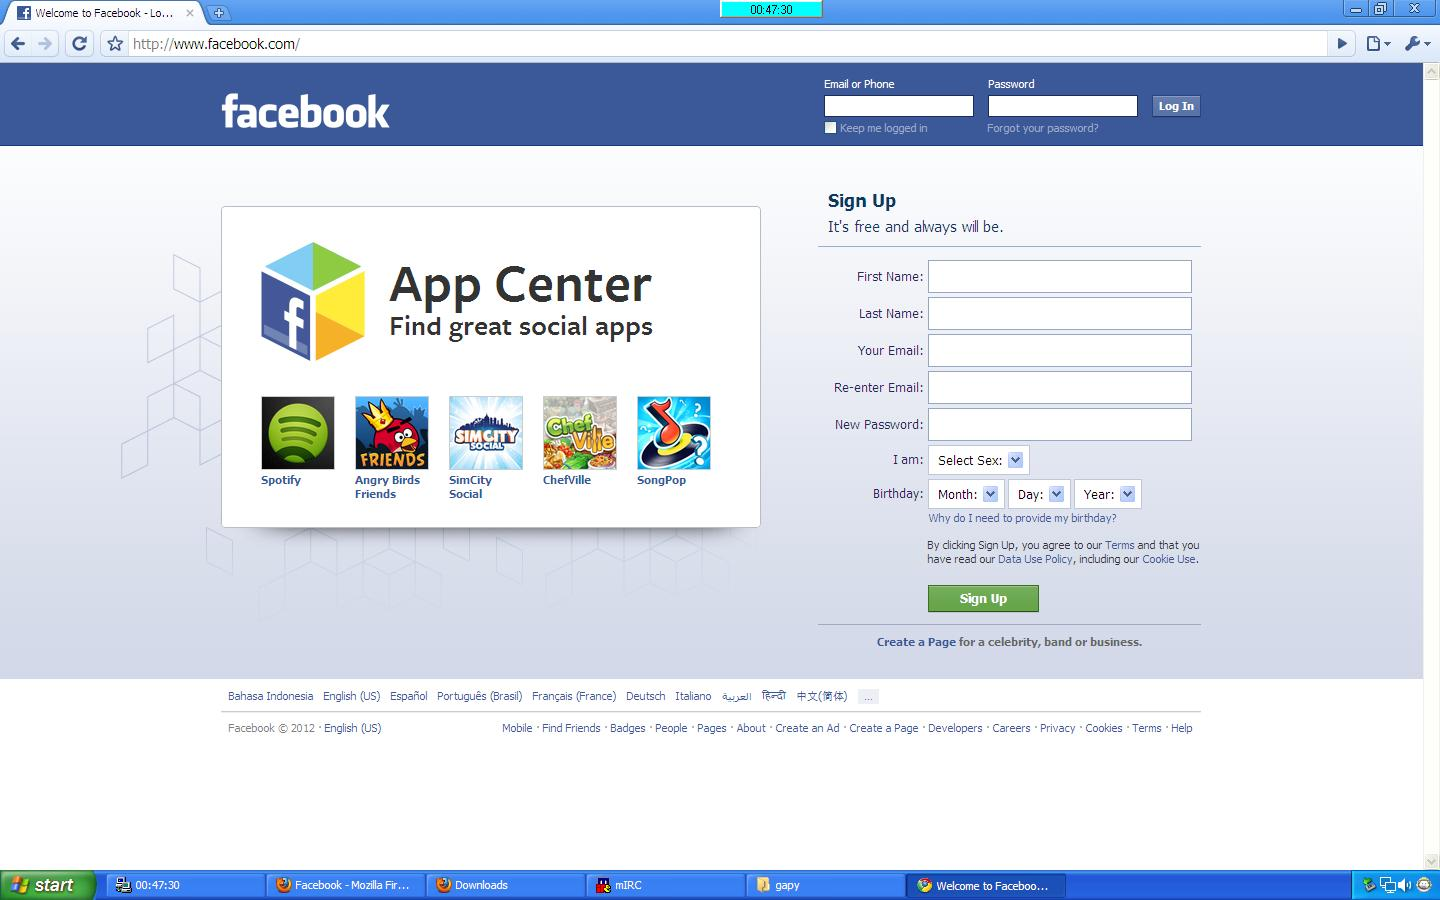 Facebook Home Page This social network's homepage